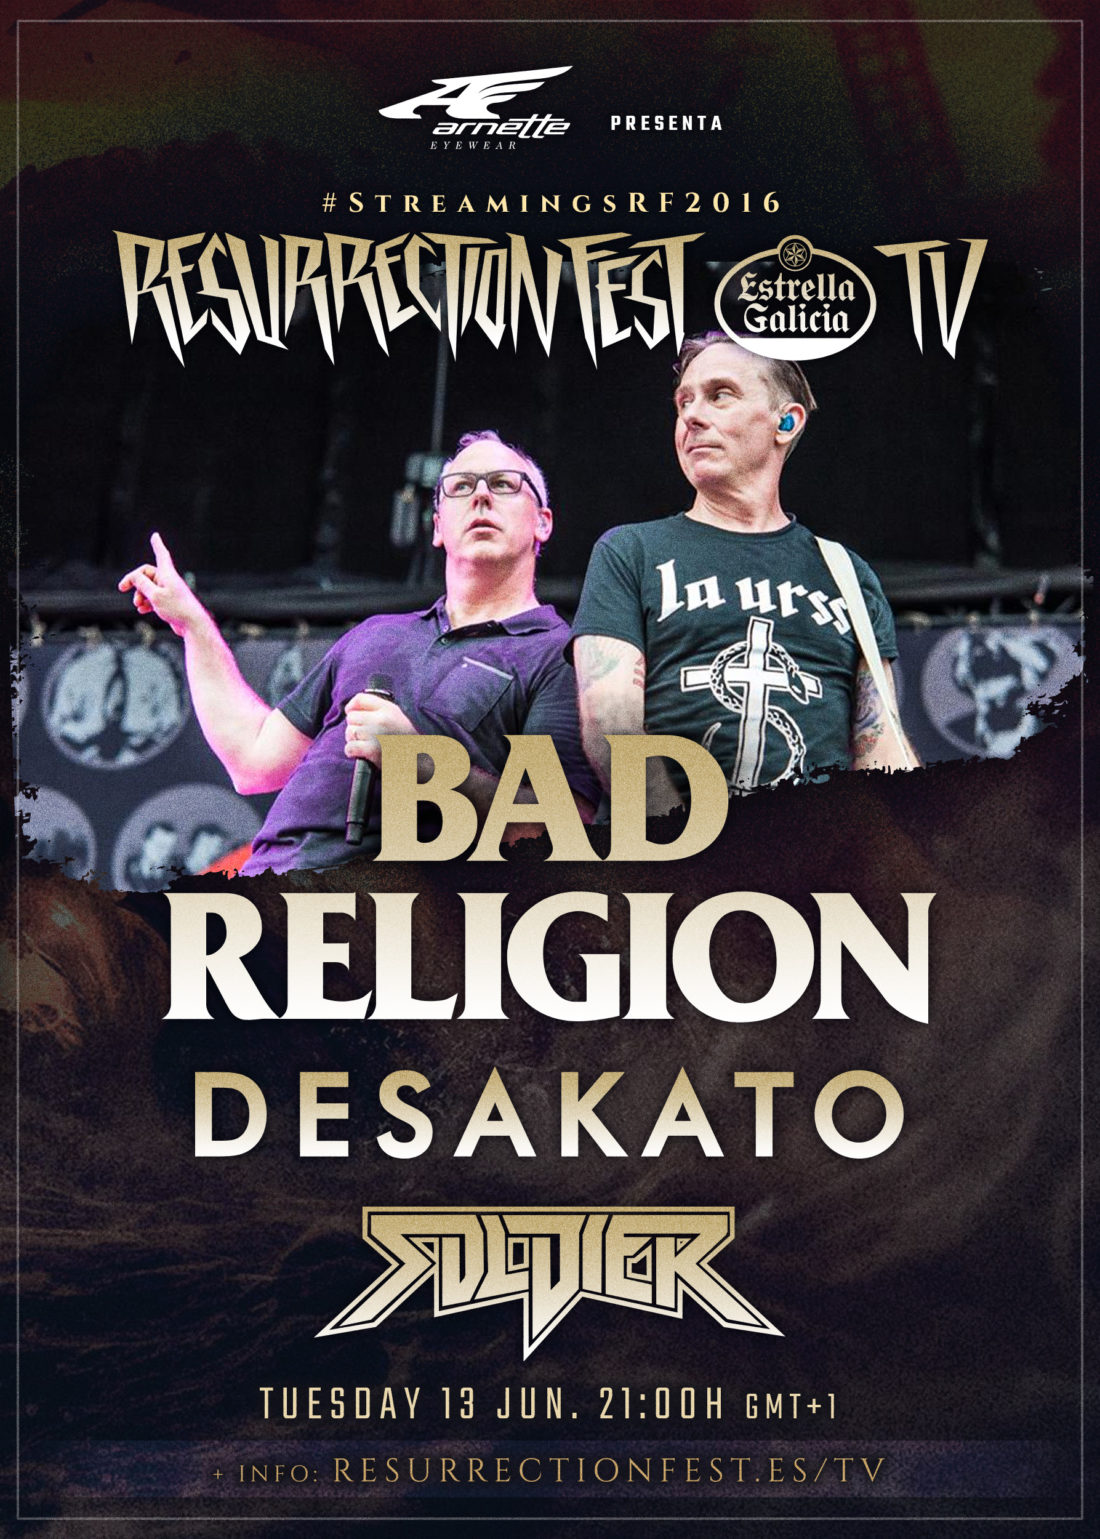 Últimos conciertos en streaming en nuestra Resurrection Fest TV: Bad Religion, Desakato y Soldier